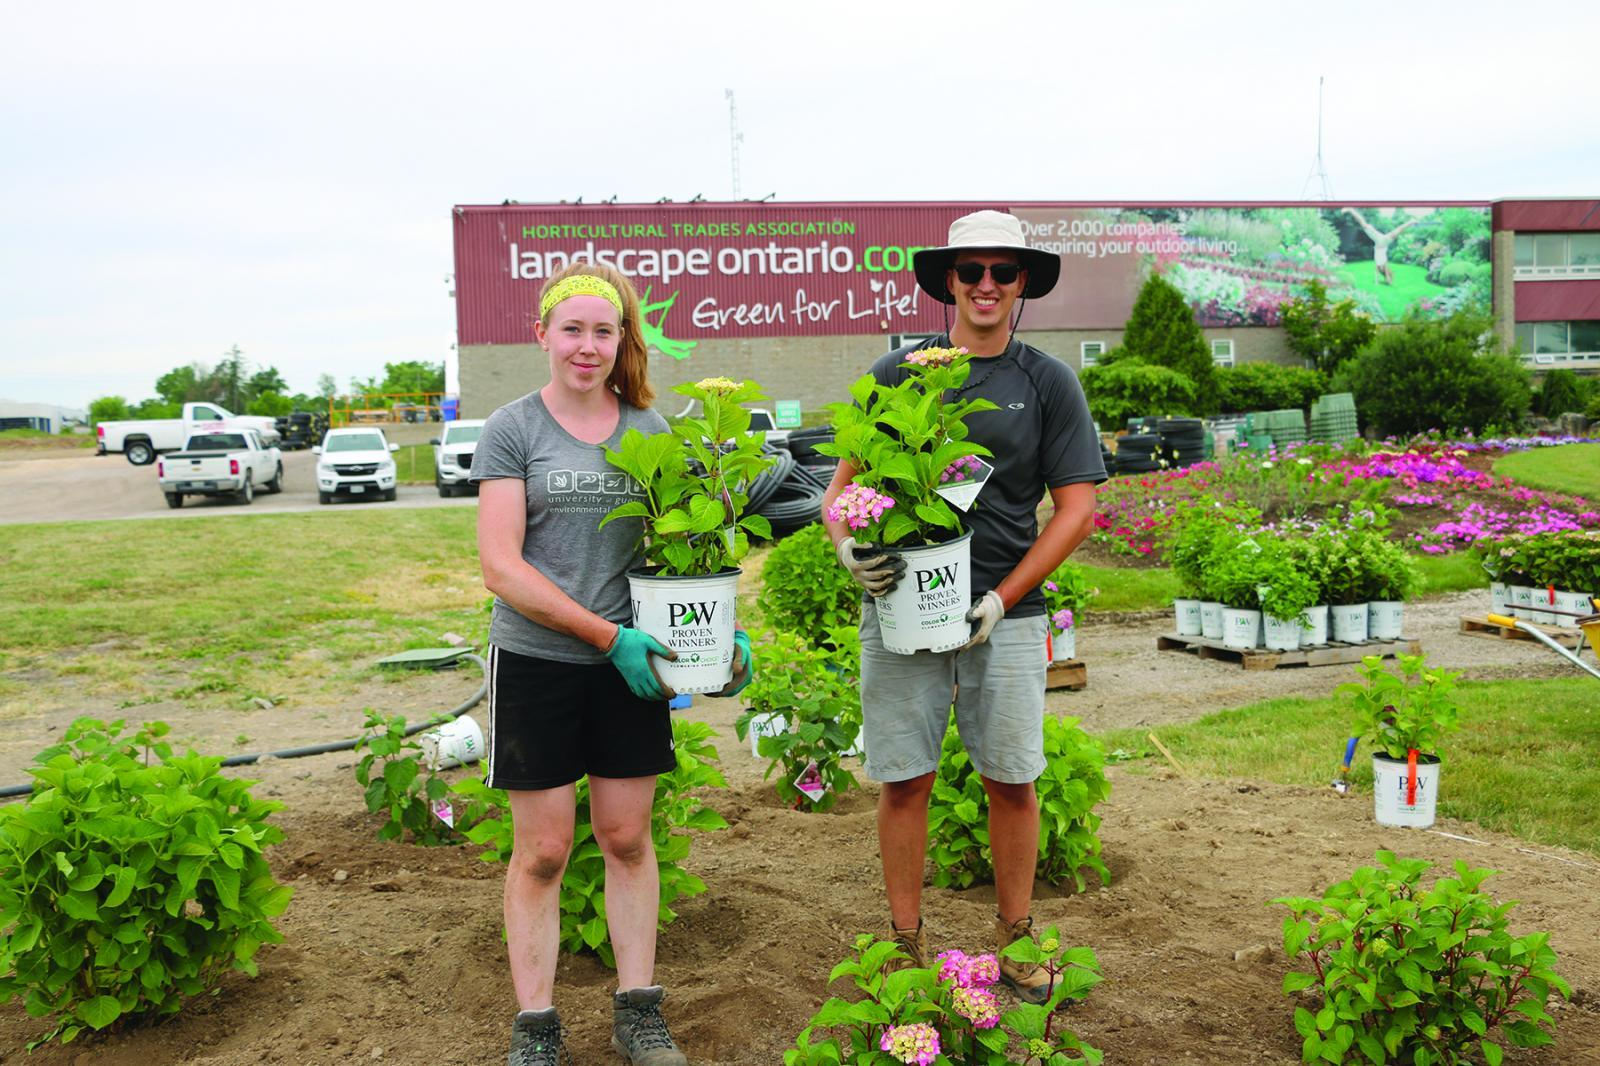 Trial garden site features new plants and expansion